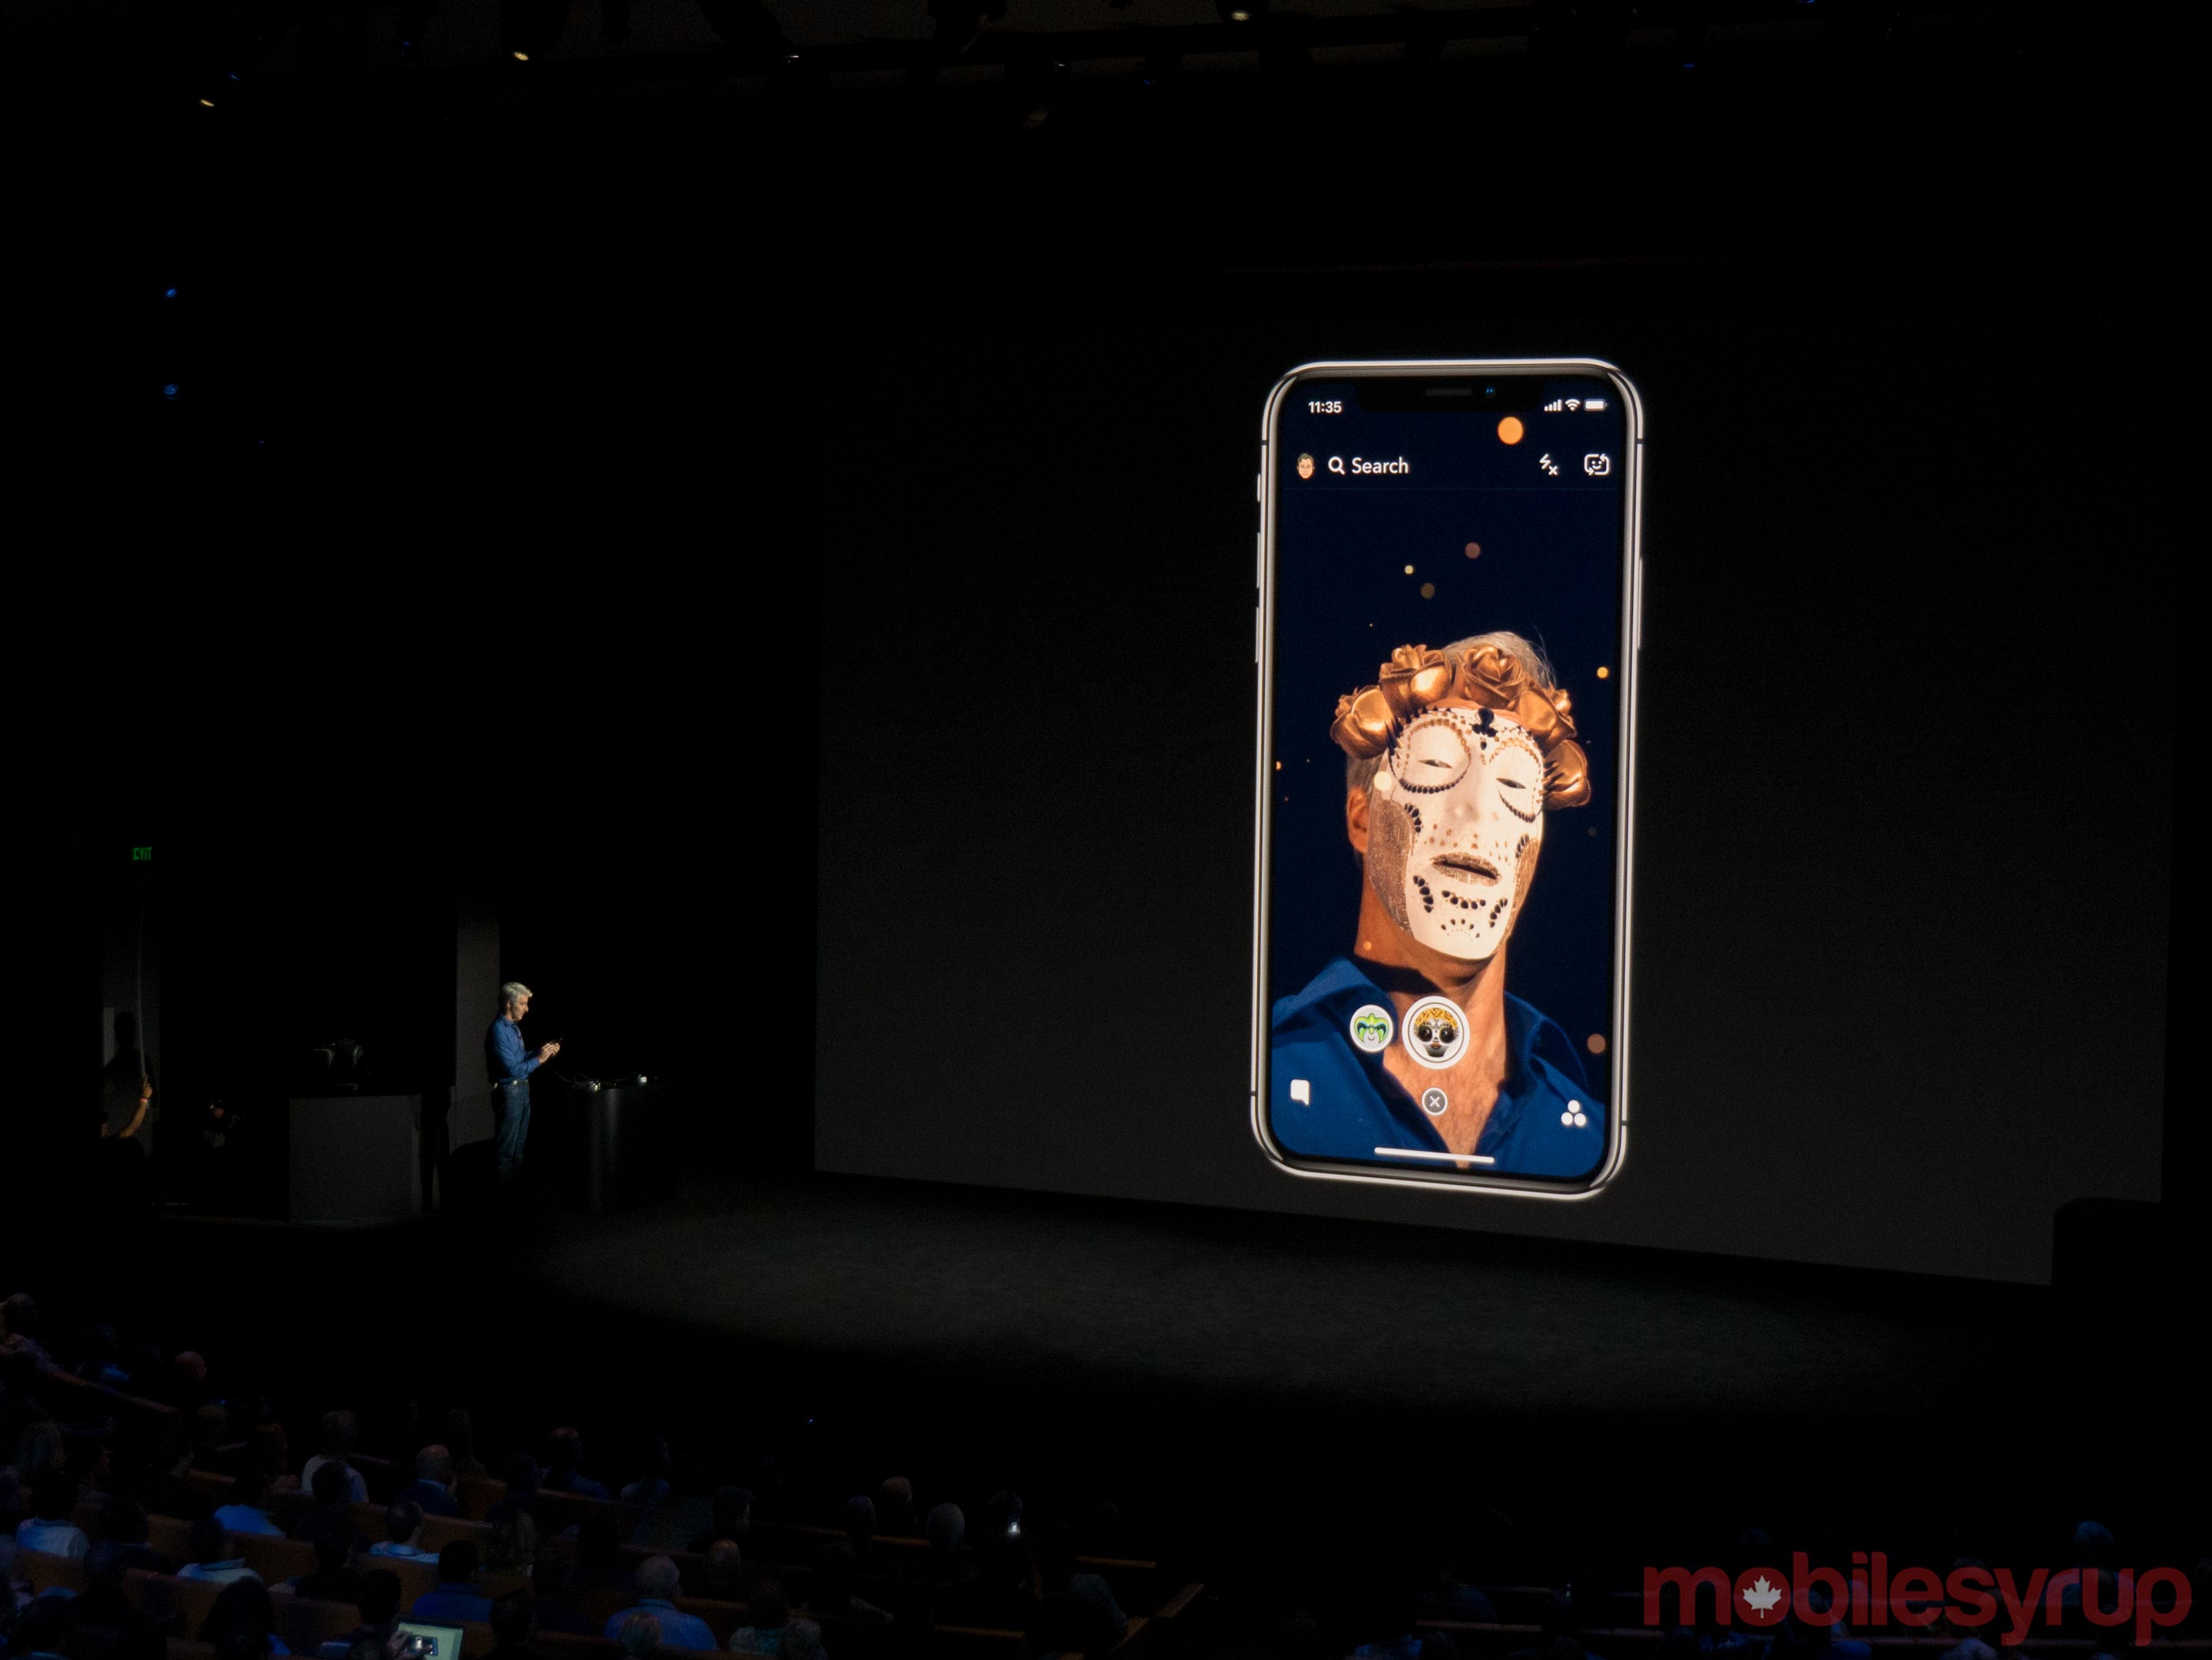 On The Camera Front IPhone X Features Two 12 Megapixel Sensors With A F 18 Wide Angle Lens And 24 Telephoto Like Galaxy Note 8